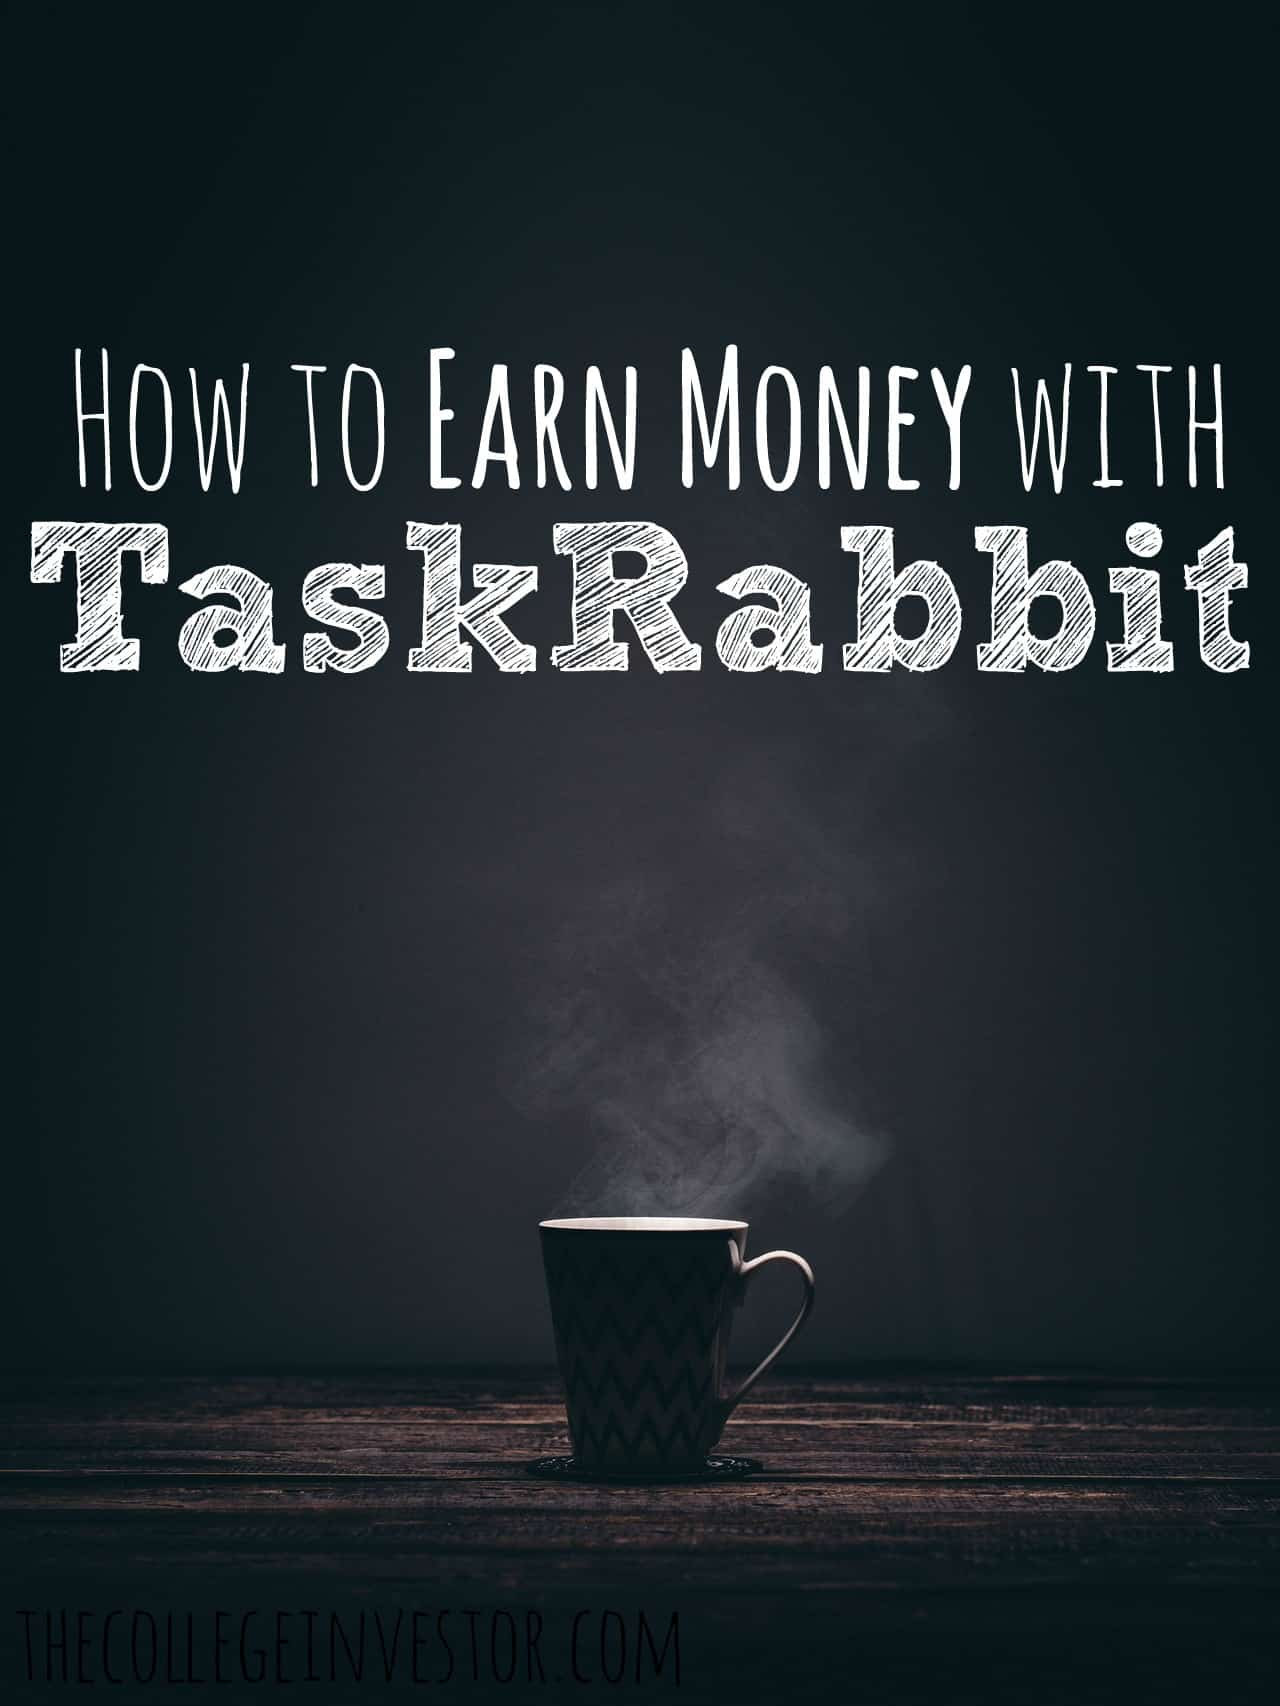 taskrabbit the best jobs for college students the college investor if you re looking for a flexible job that you can do as a student